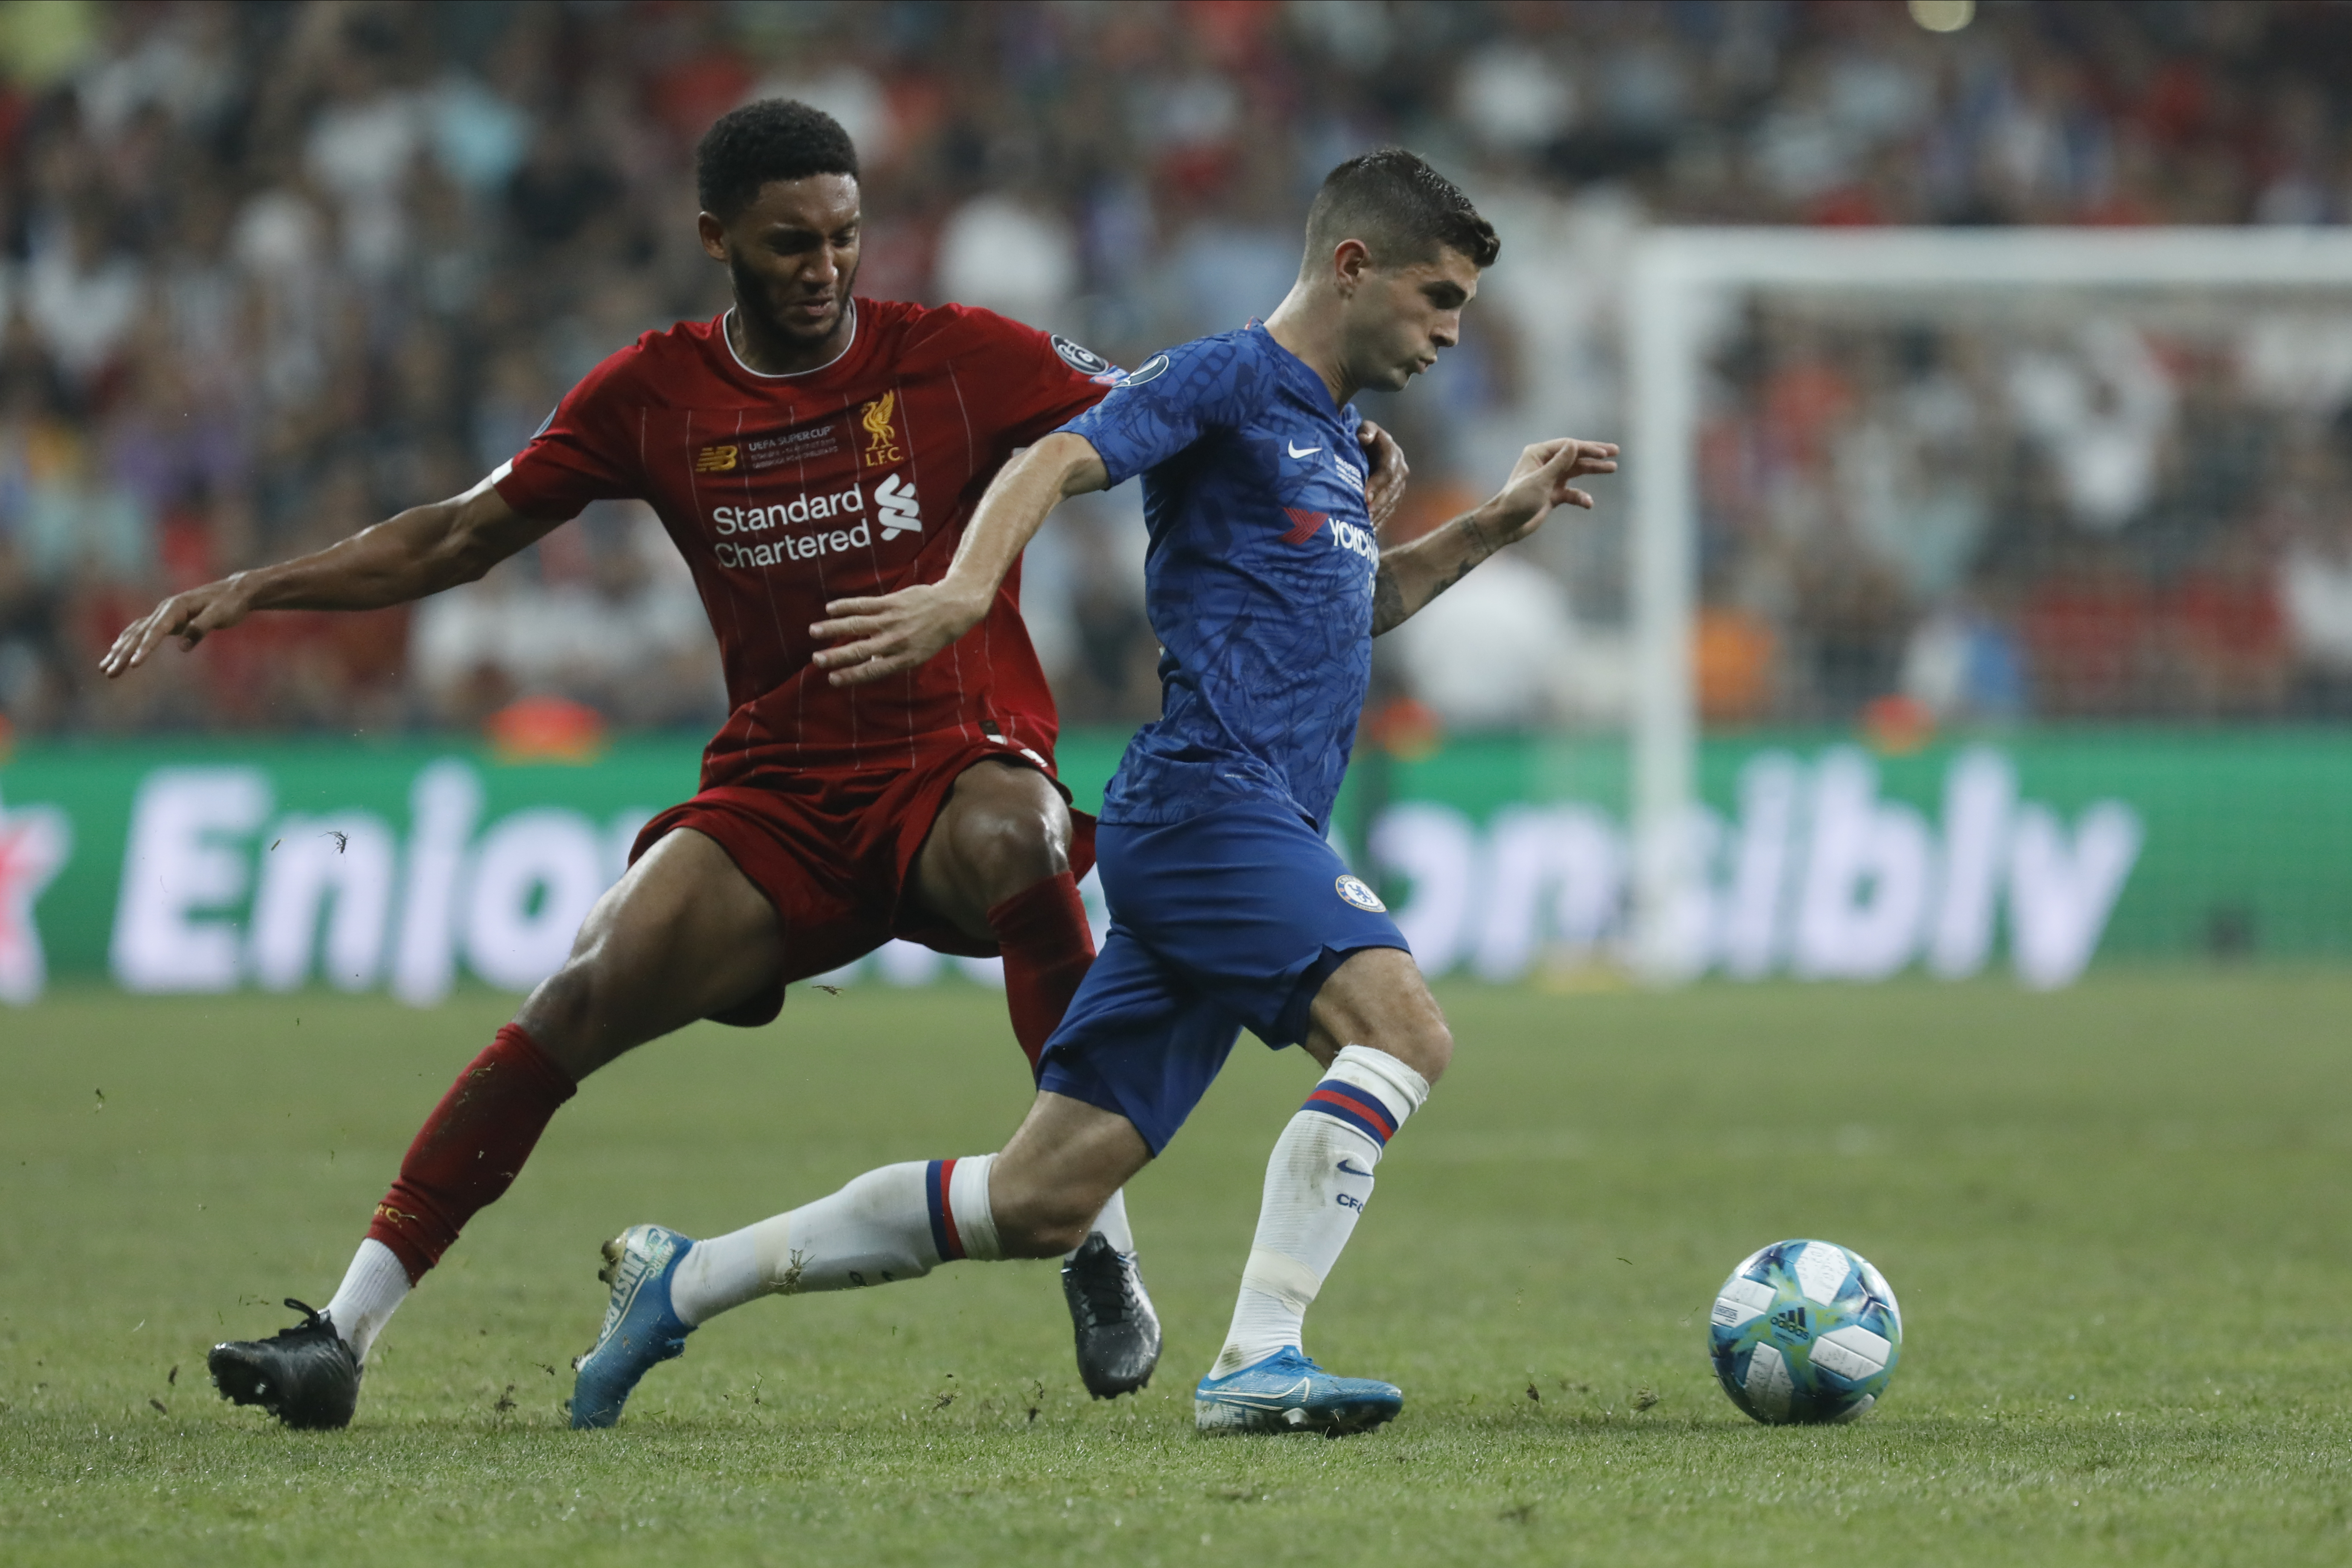 Pulisic feels Chelsea on right path despite 'harsh' results against Liverpool and Manchester United